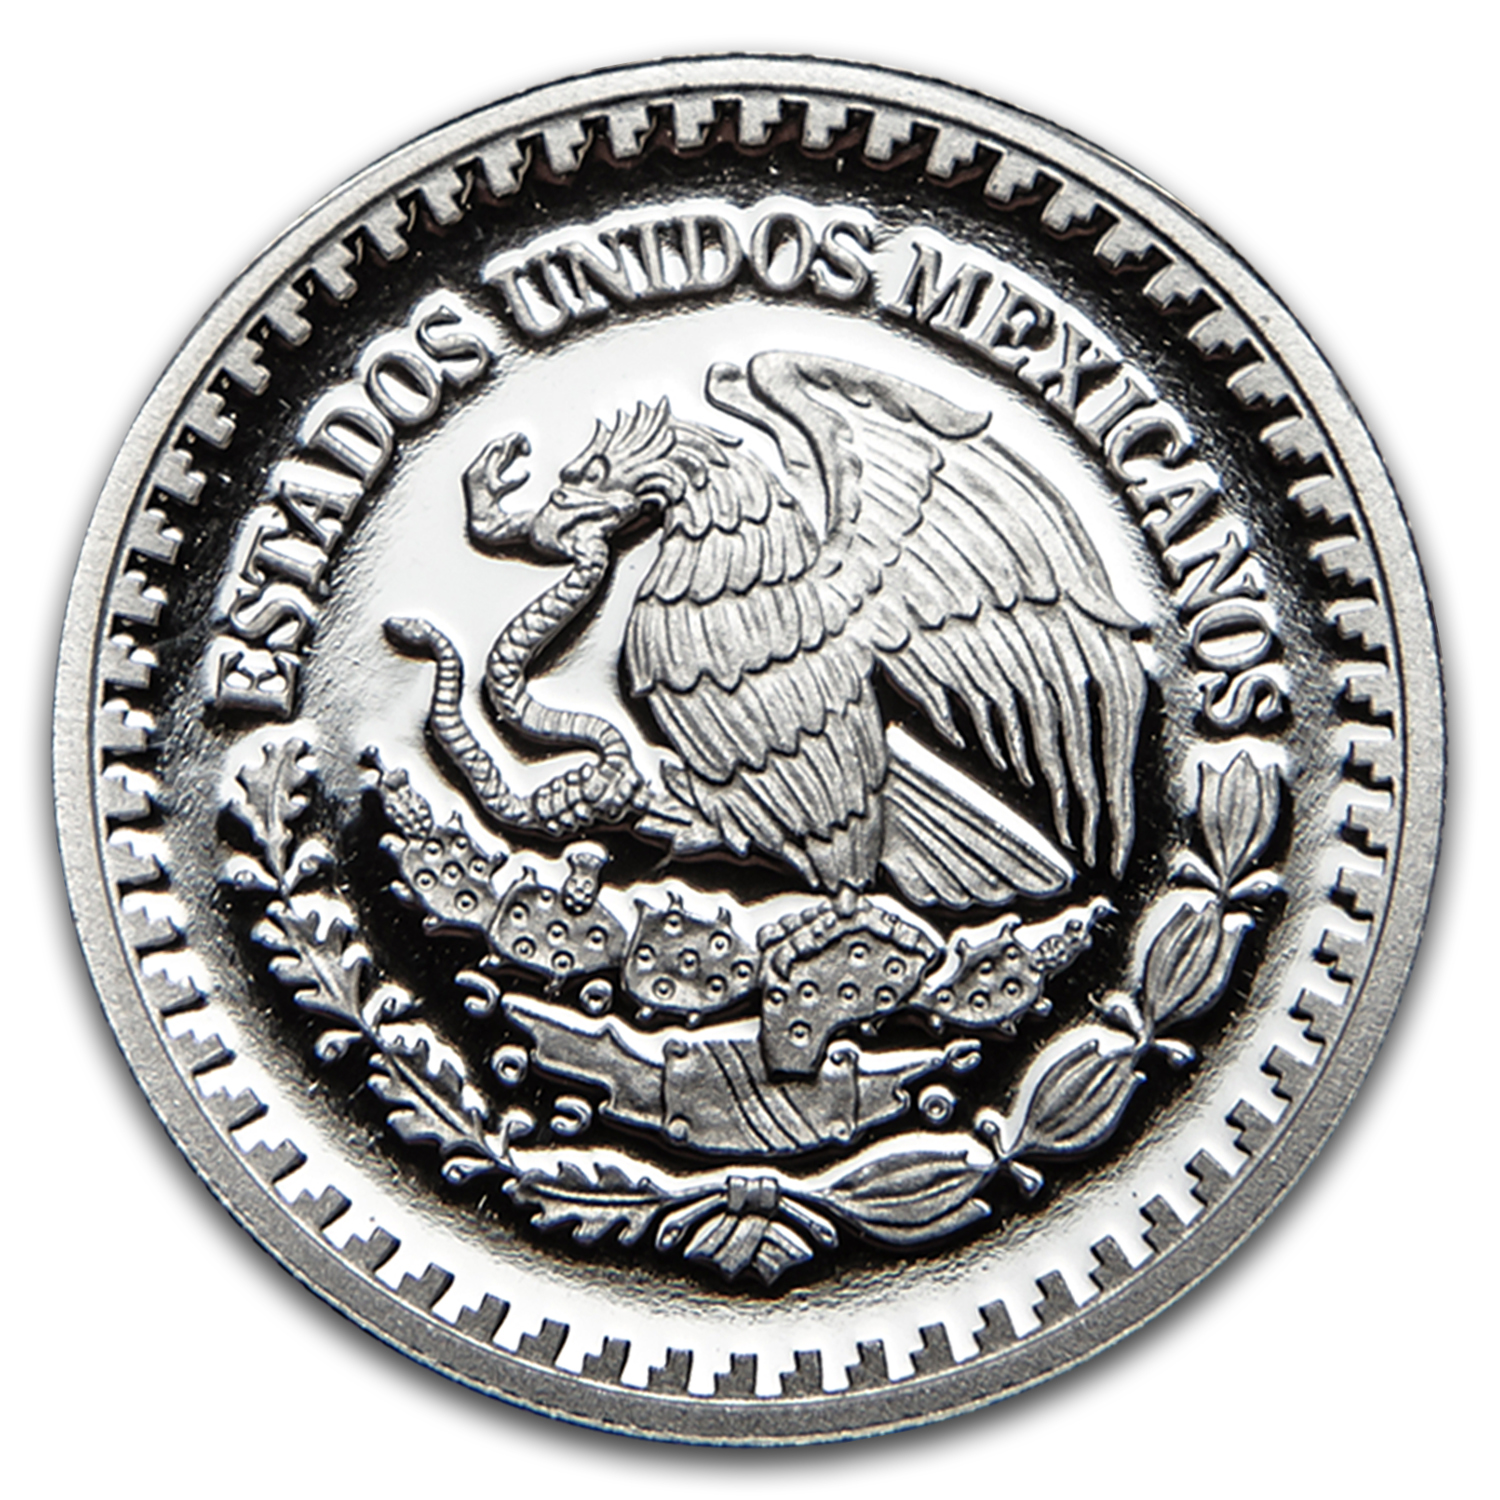 2016 Mexico 1/10 oz Silver Libertad Proof (In Capsule)